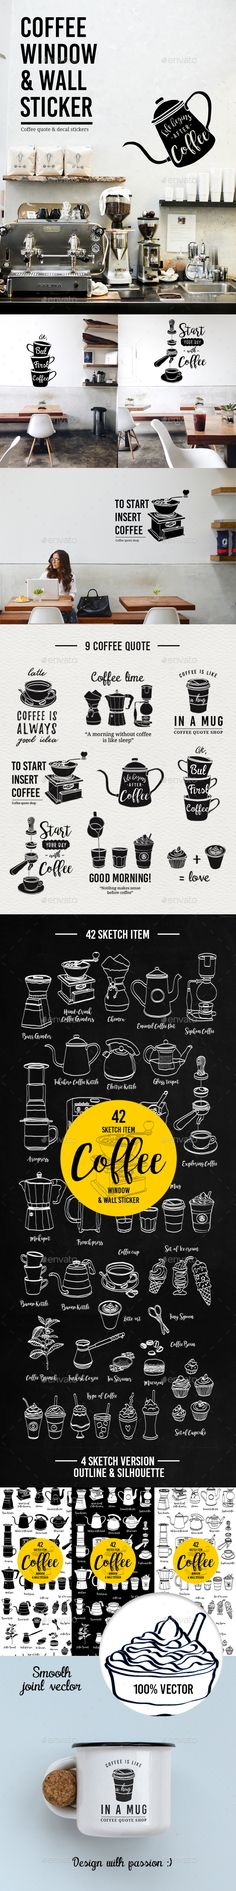 Coffee Window & Wall Sticker[Features] 9 Coffee Quote vector 41 Sketch item (Outline & Silhouette version) 100 Resizable Text is